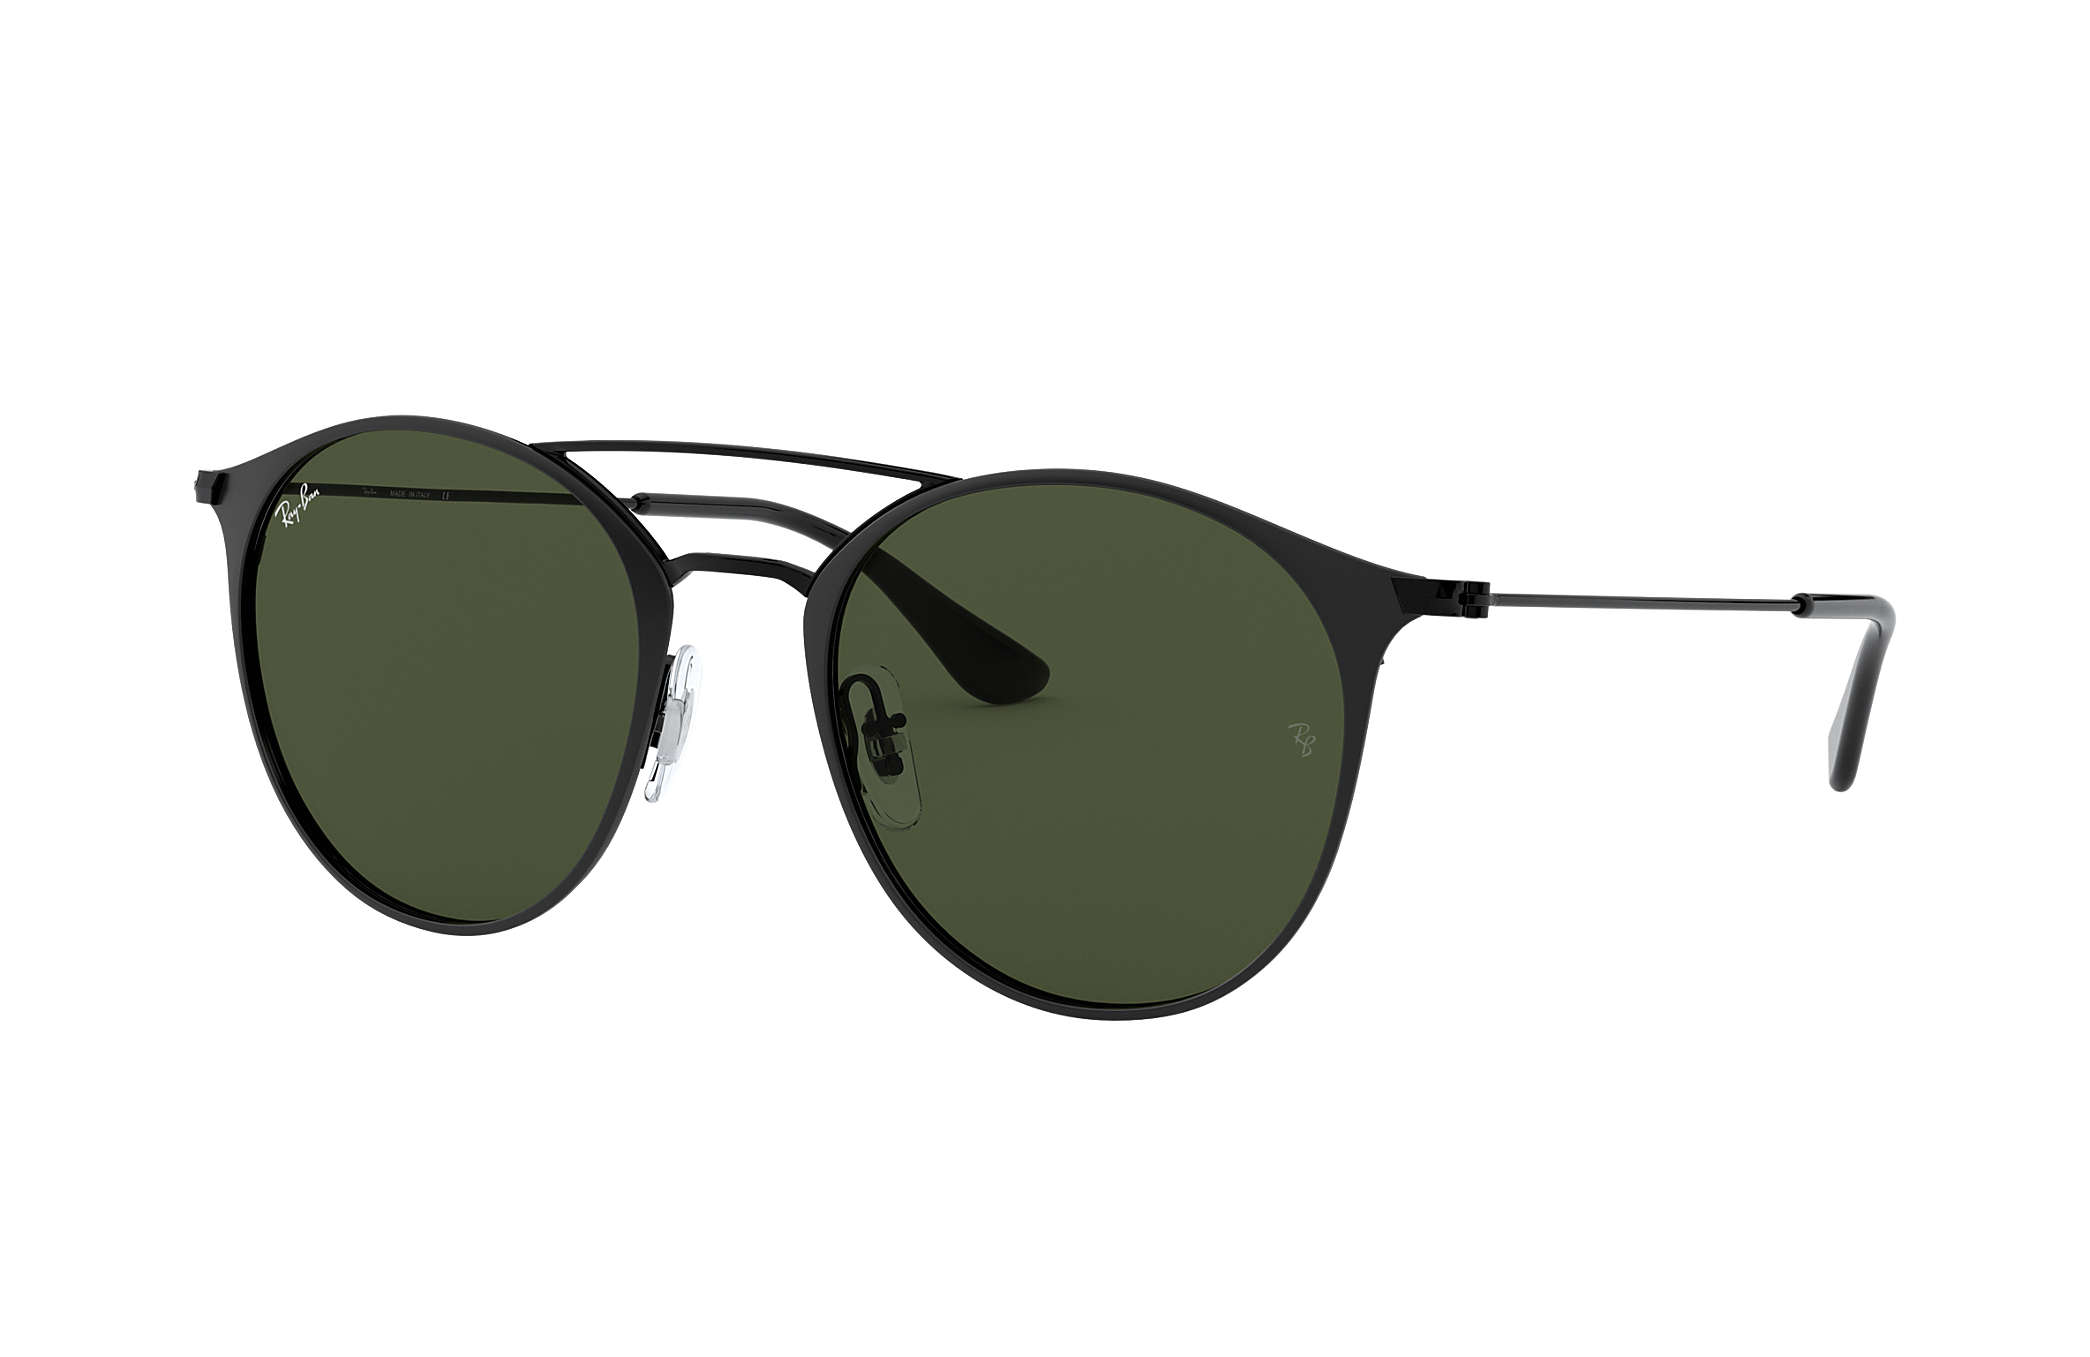 Ray-Ban RB3546 9074 52 mm/20 mm UGZzIZCLW